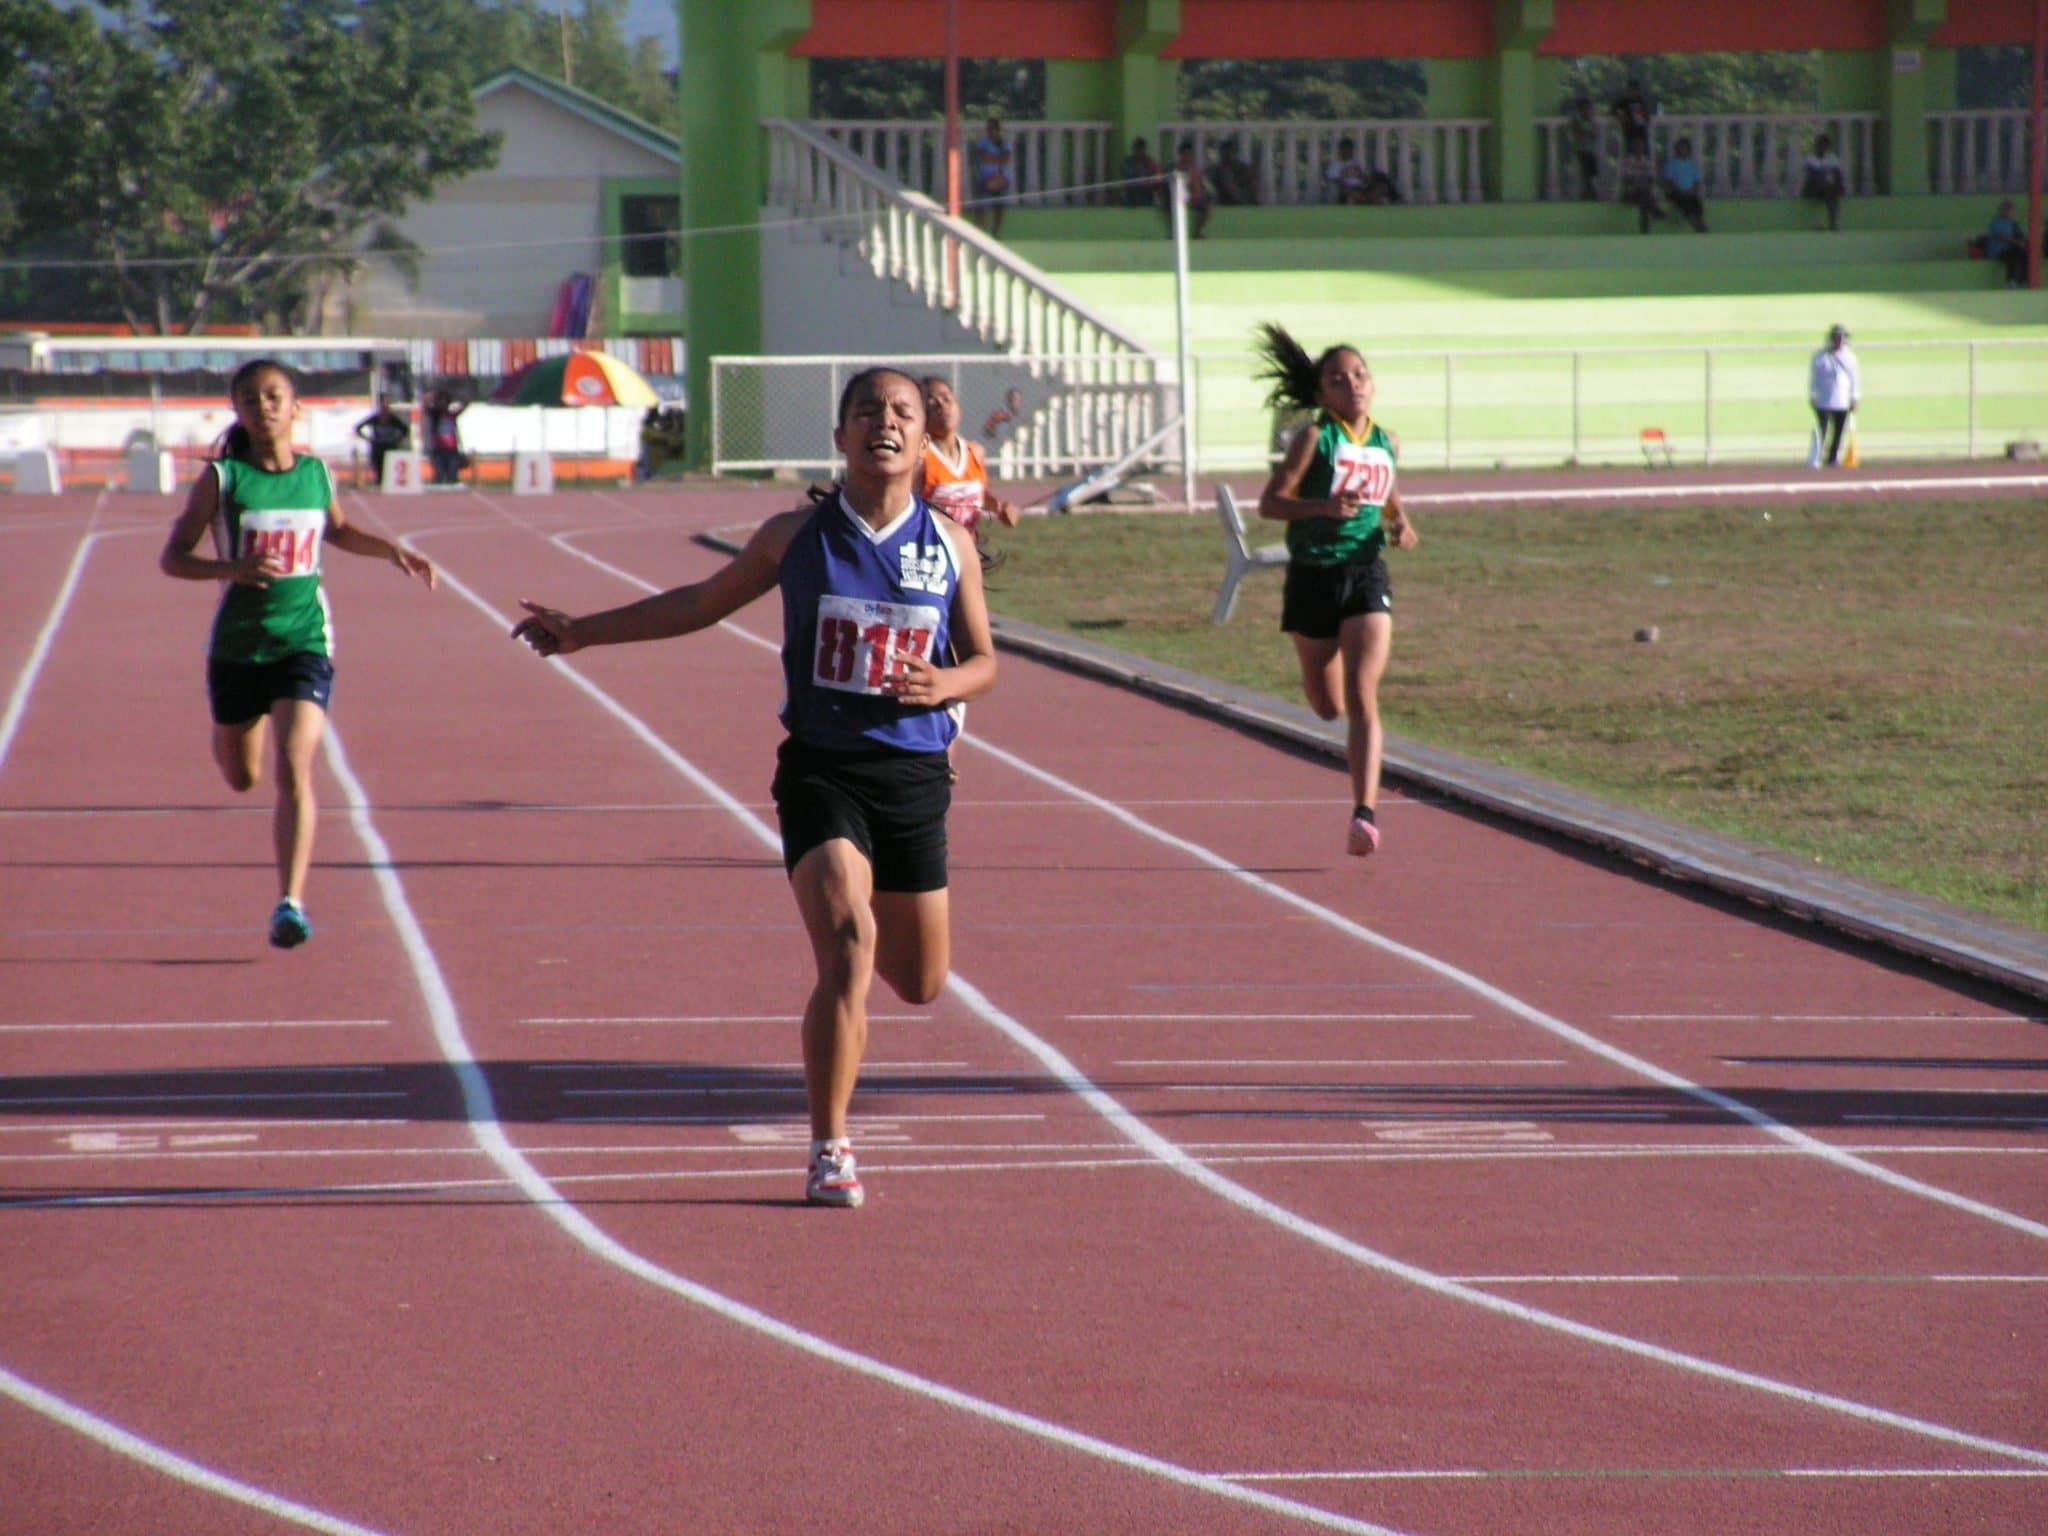 Monic Grace Gulac's Strong Finish at the 400m dash.